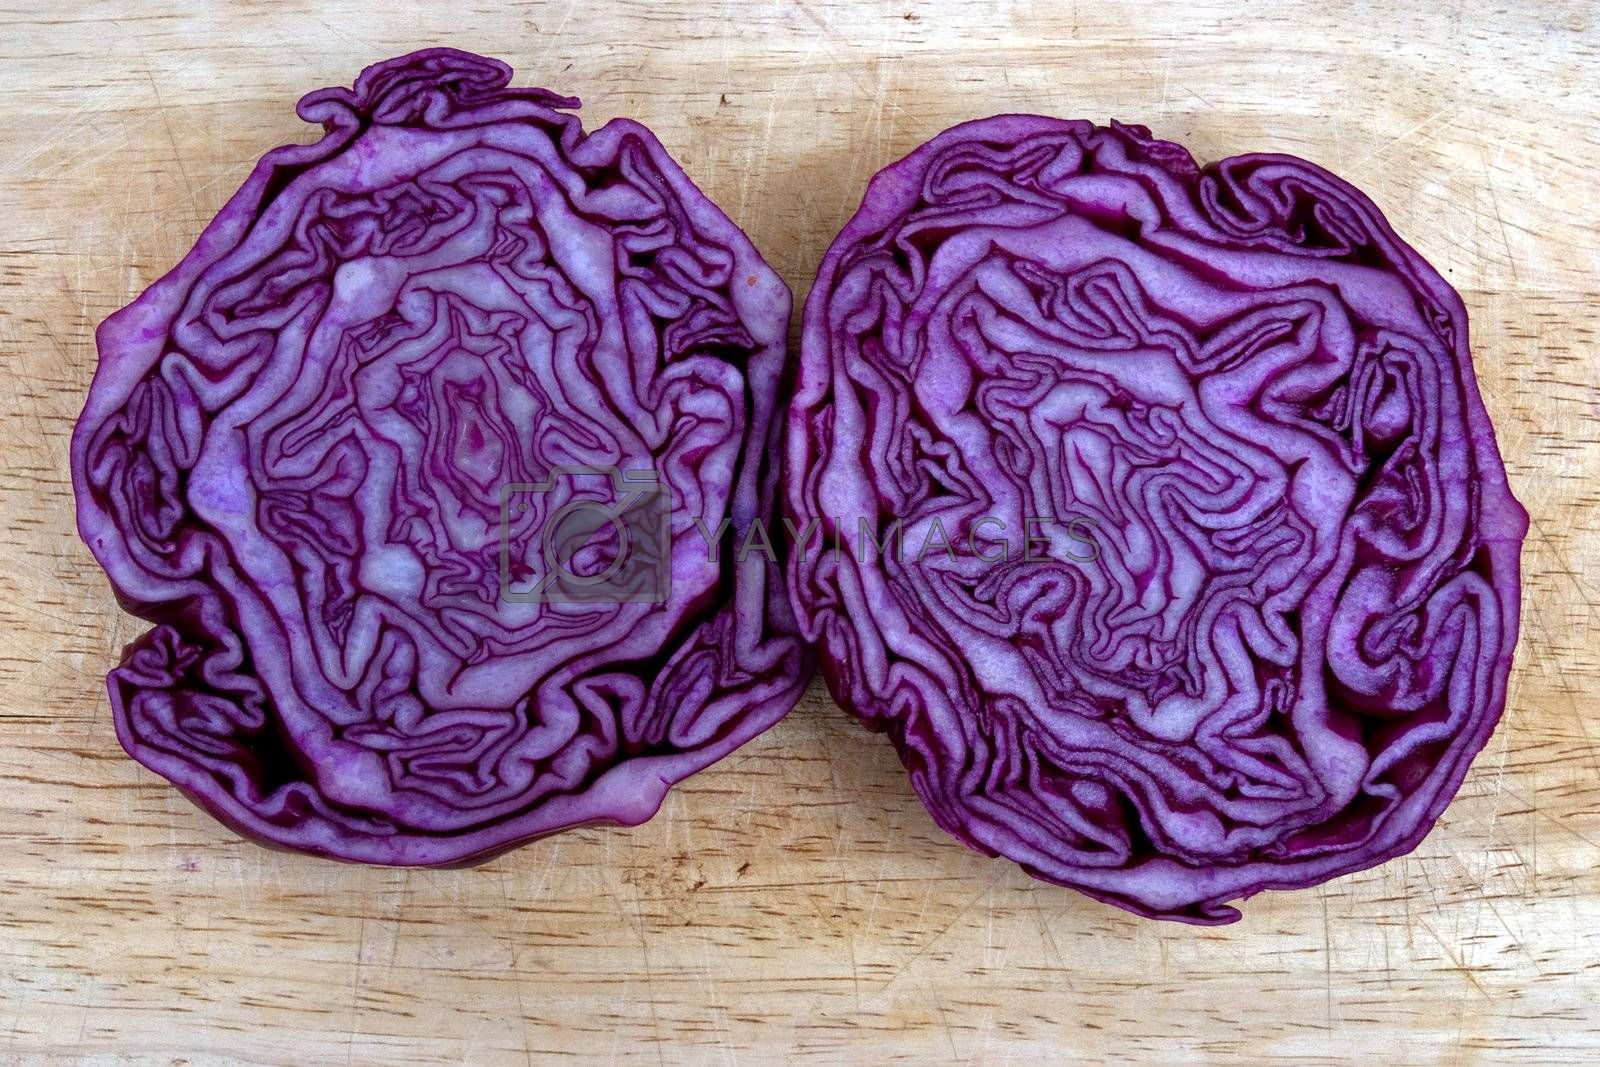 Red cabbage cut in half looking like a brain